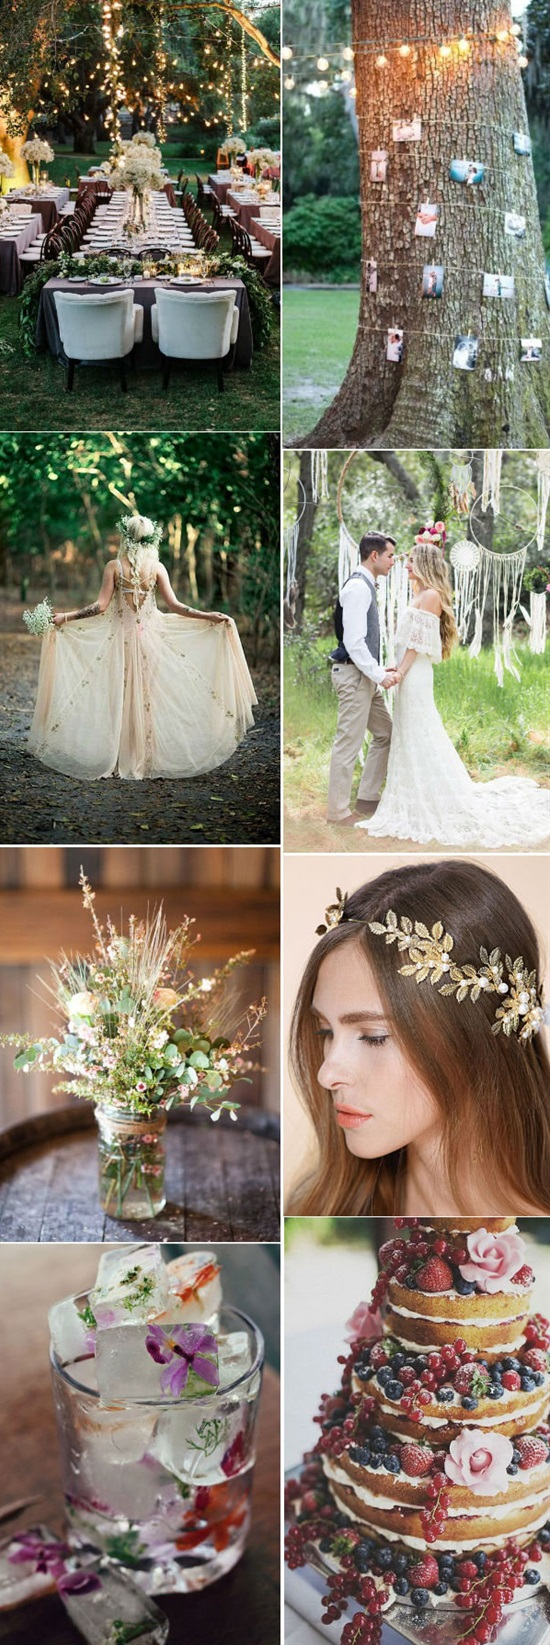 The top 10 wedding themes for 2019/2020 - wedding themes, wedding theme, purple wedding theme, fall wedding theme